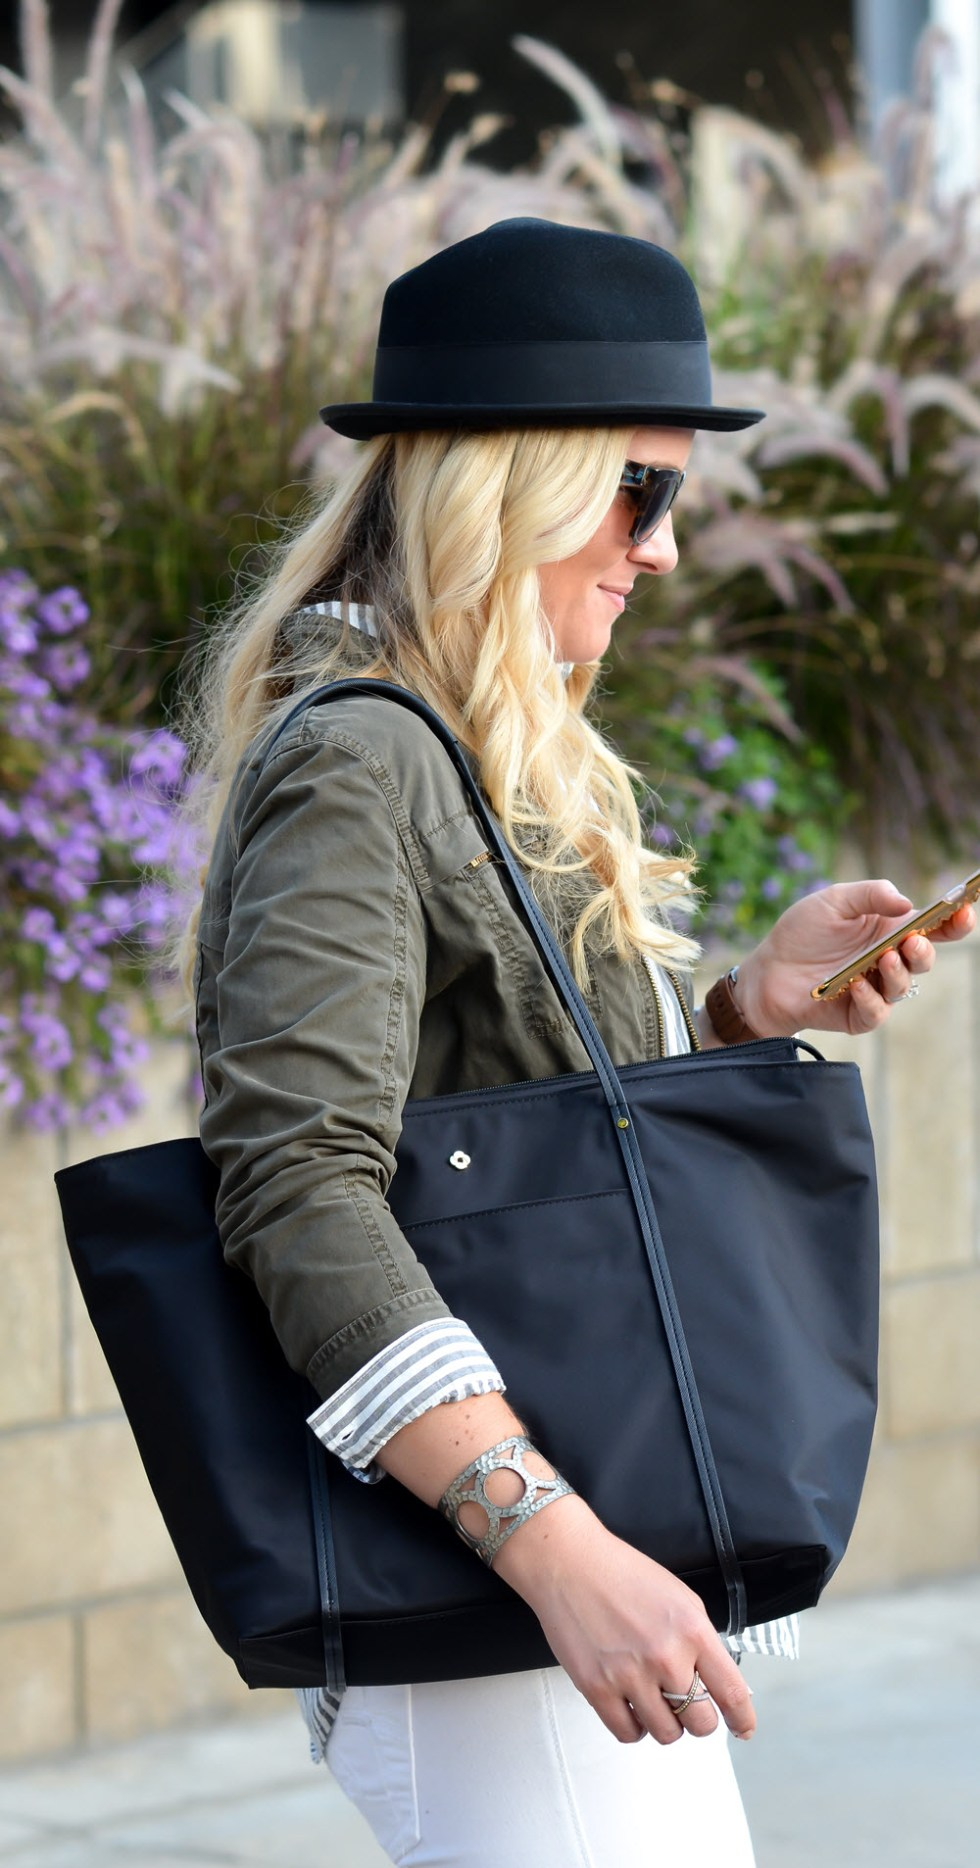 Best Travel Work Bags for Stylish Women. Chic Work Laptop Tote- Samsonite Lyssa Tote Review